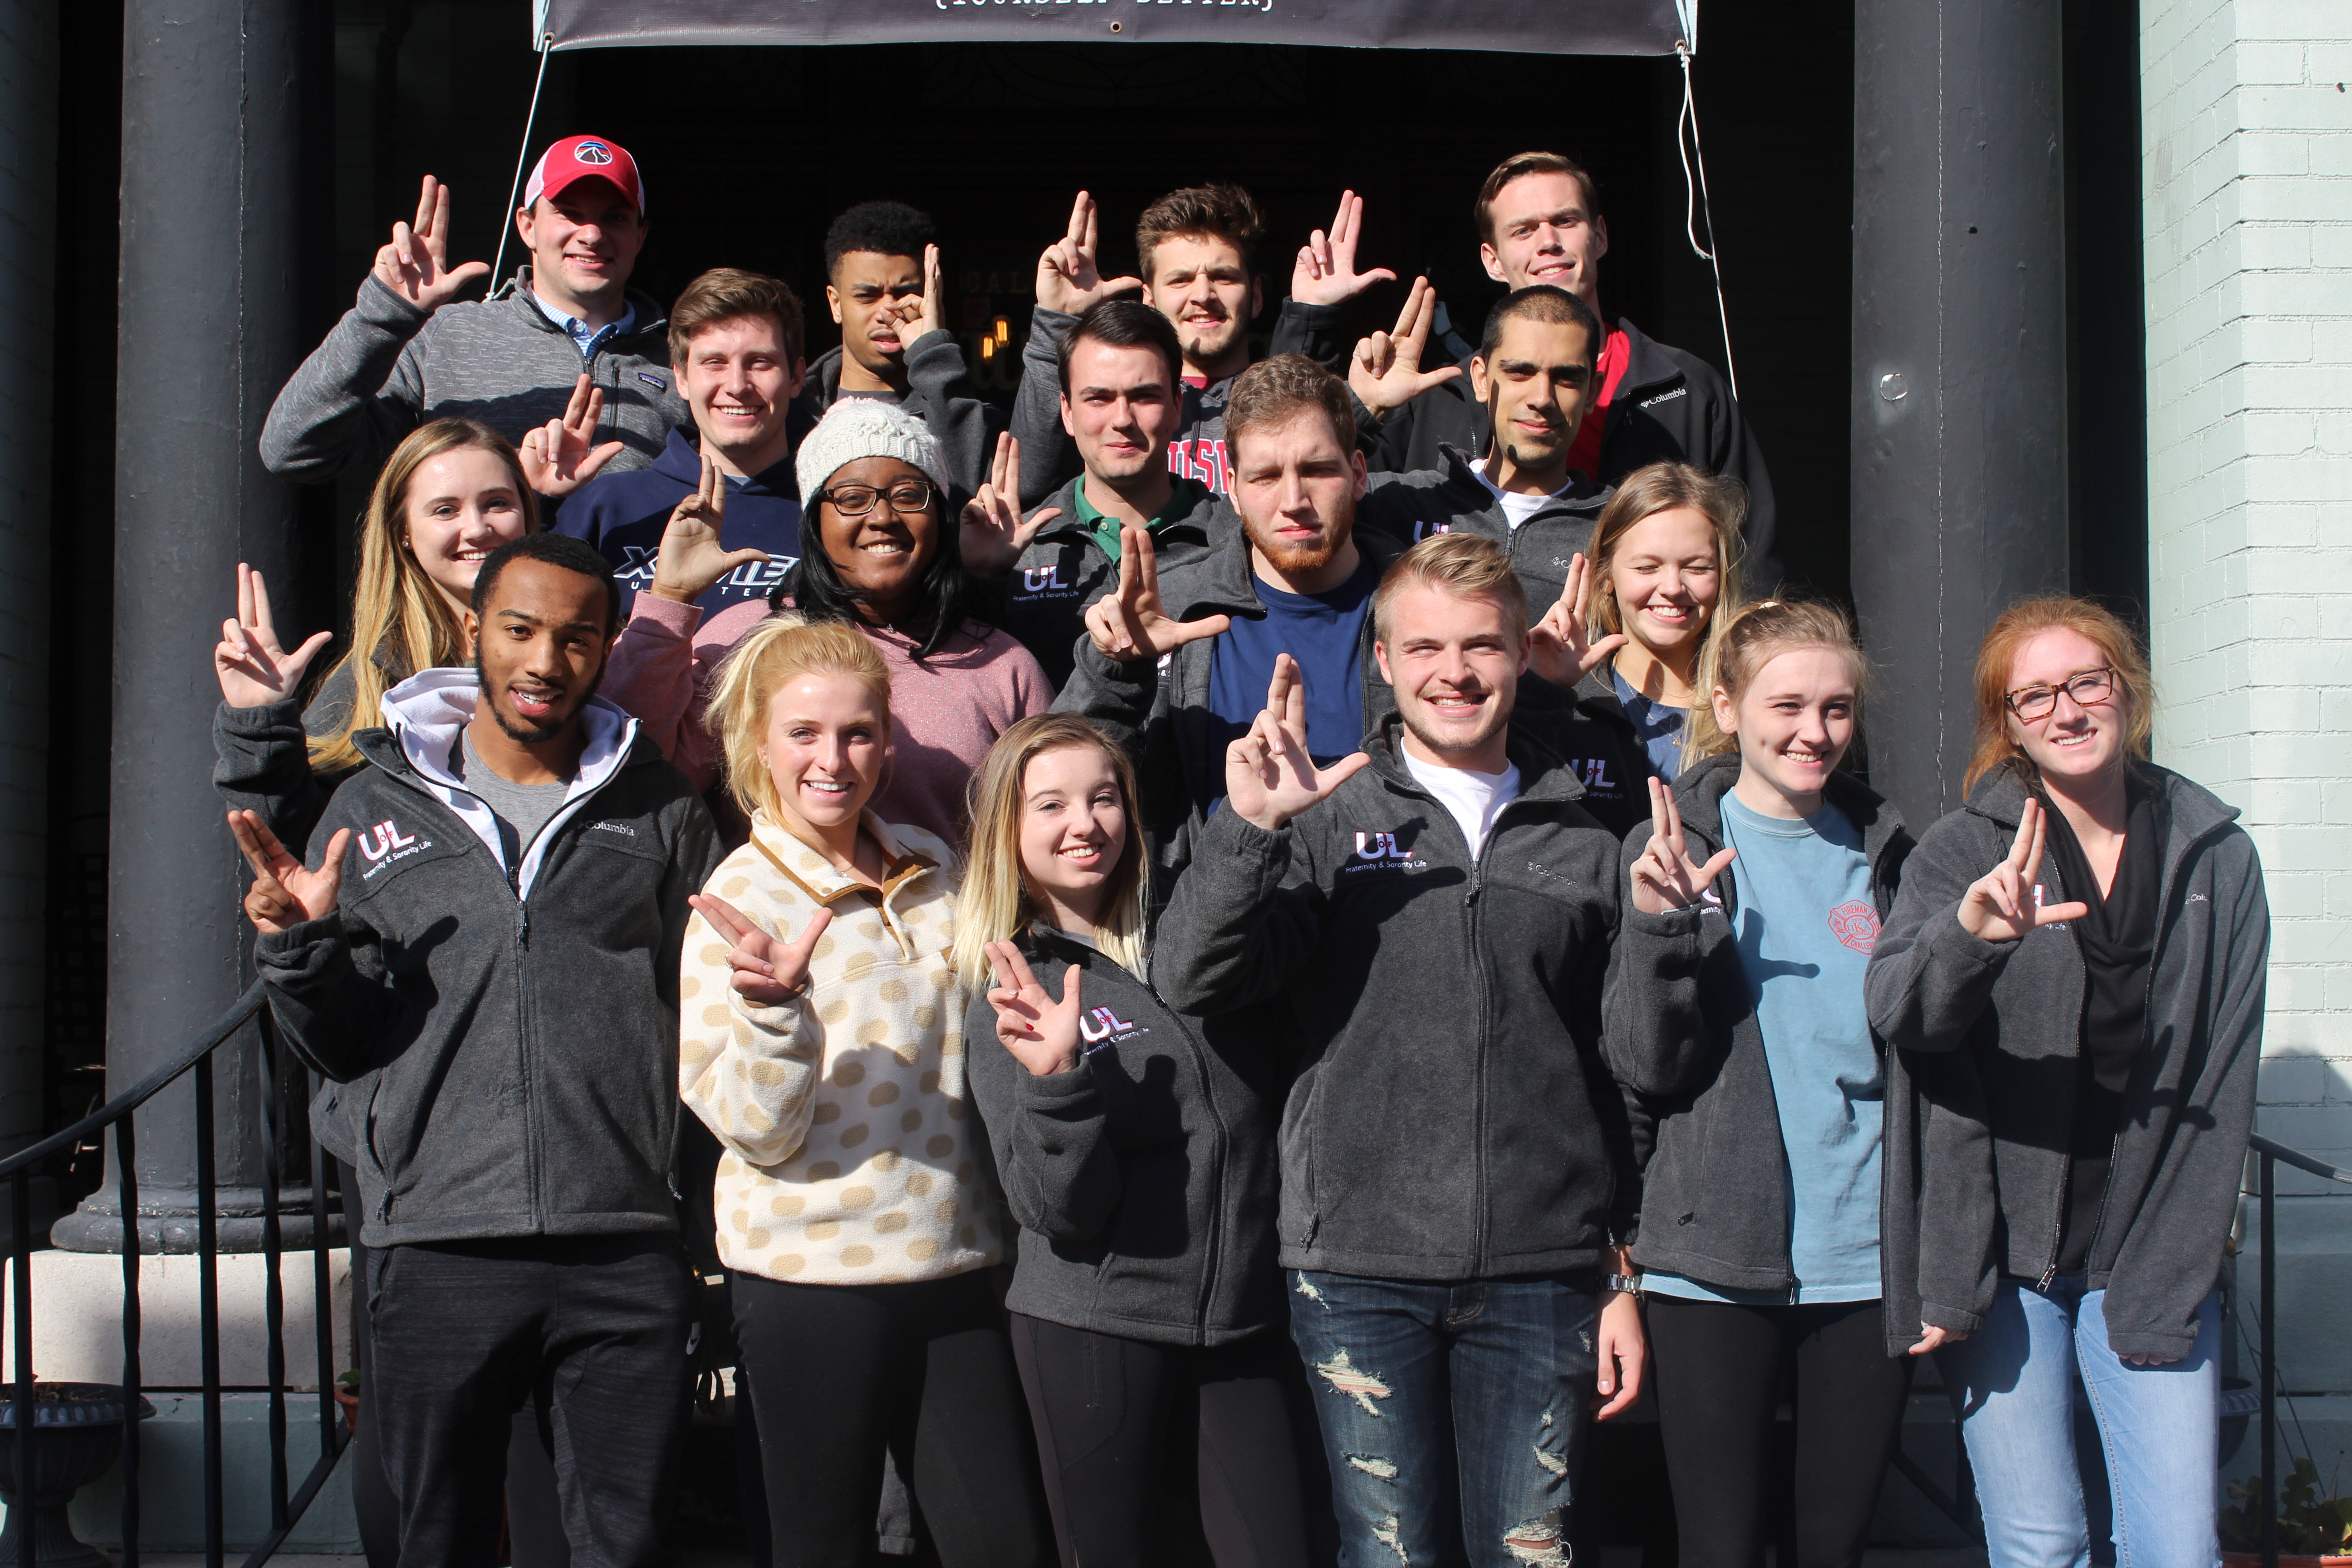 diverse group of students smiling and holding up the L sign